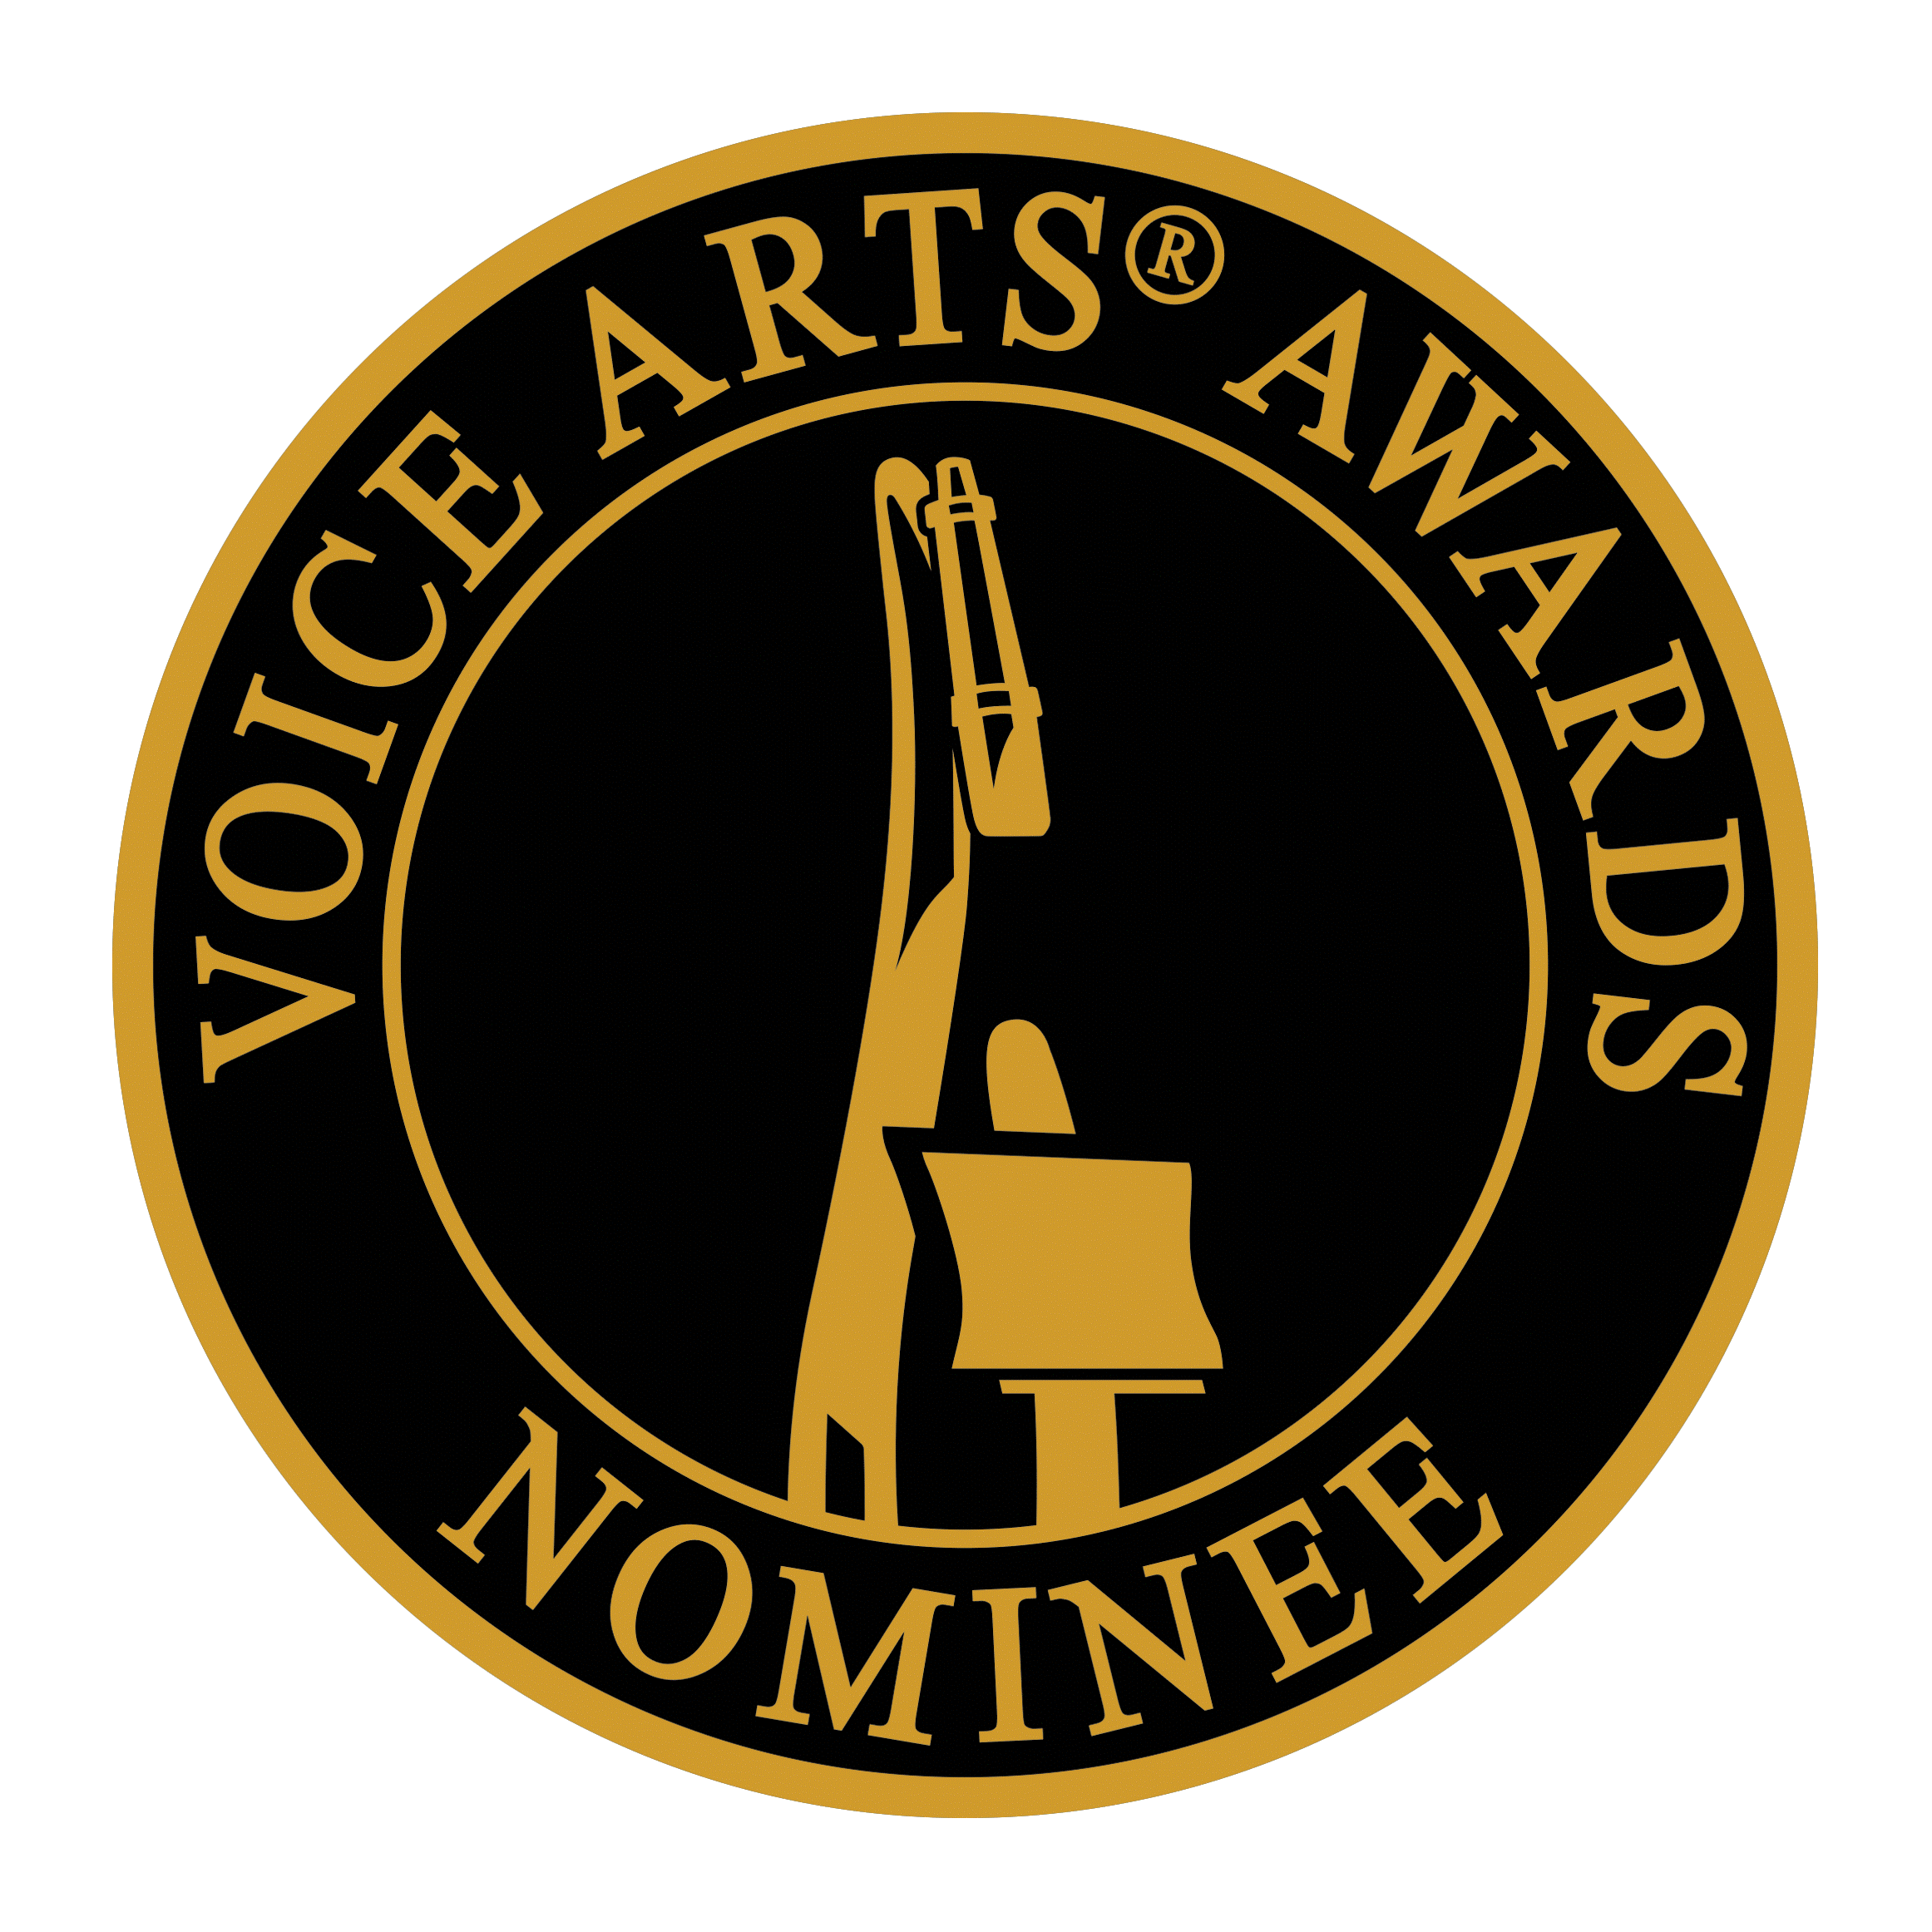 BLUNDER WOMAN PRODUCTIONS has three Voice Arts Awards nominations! Two for original productions we published, and one for a book we produced from casting to final product.   Nevertheless We Persisted: Me Too      Wrong Turn      The Murmur of Bees   Written by Sofia Segovia, translated by Sumoin Bruni  Performed by Xe Sands and Angelo Di Loreto  Produced for Brilliance Audio